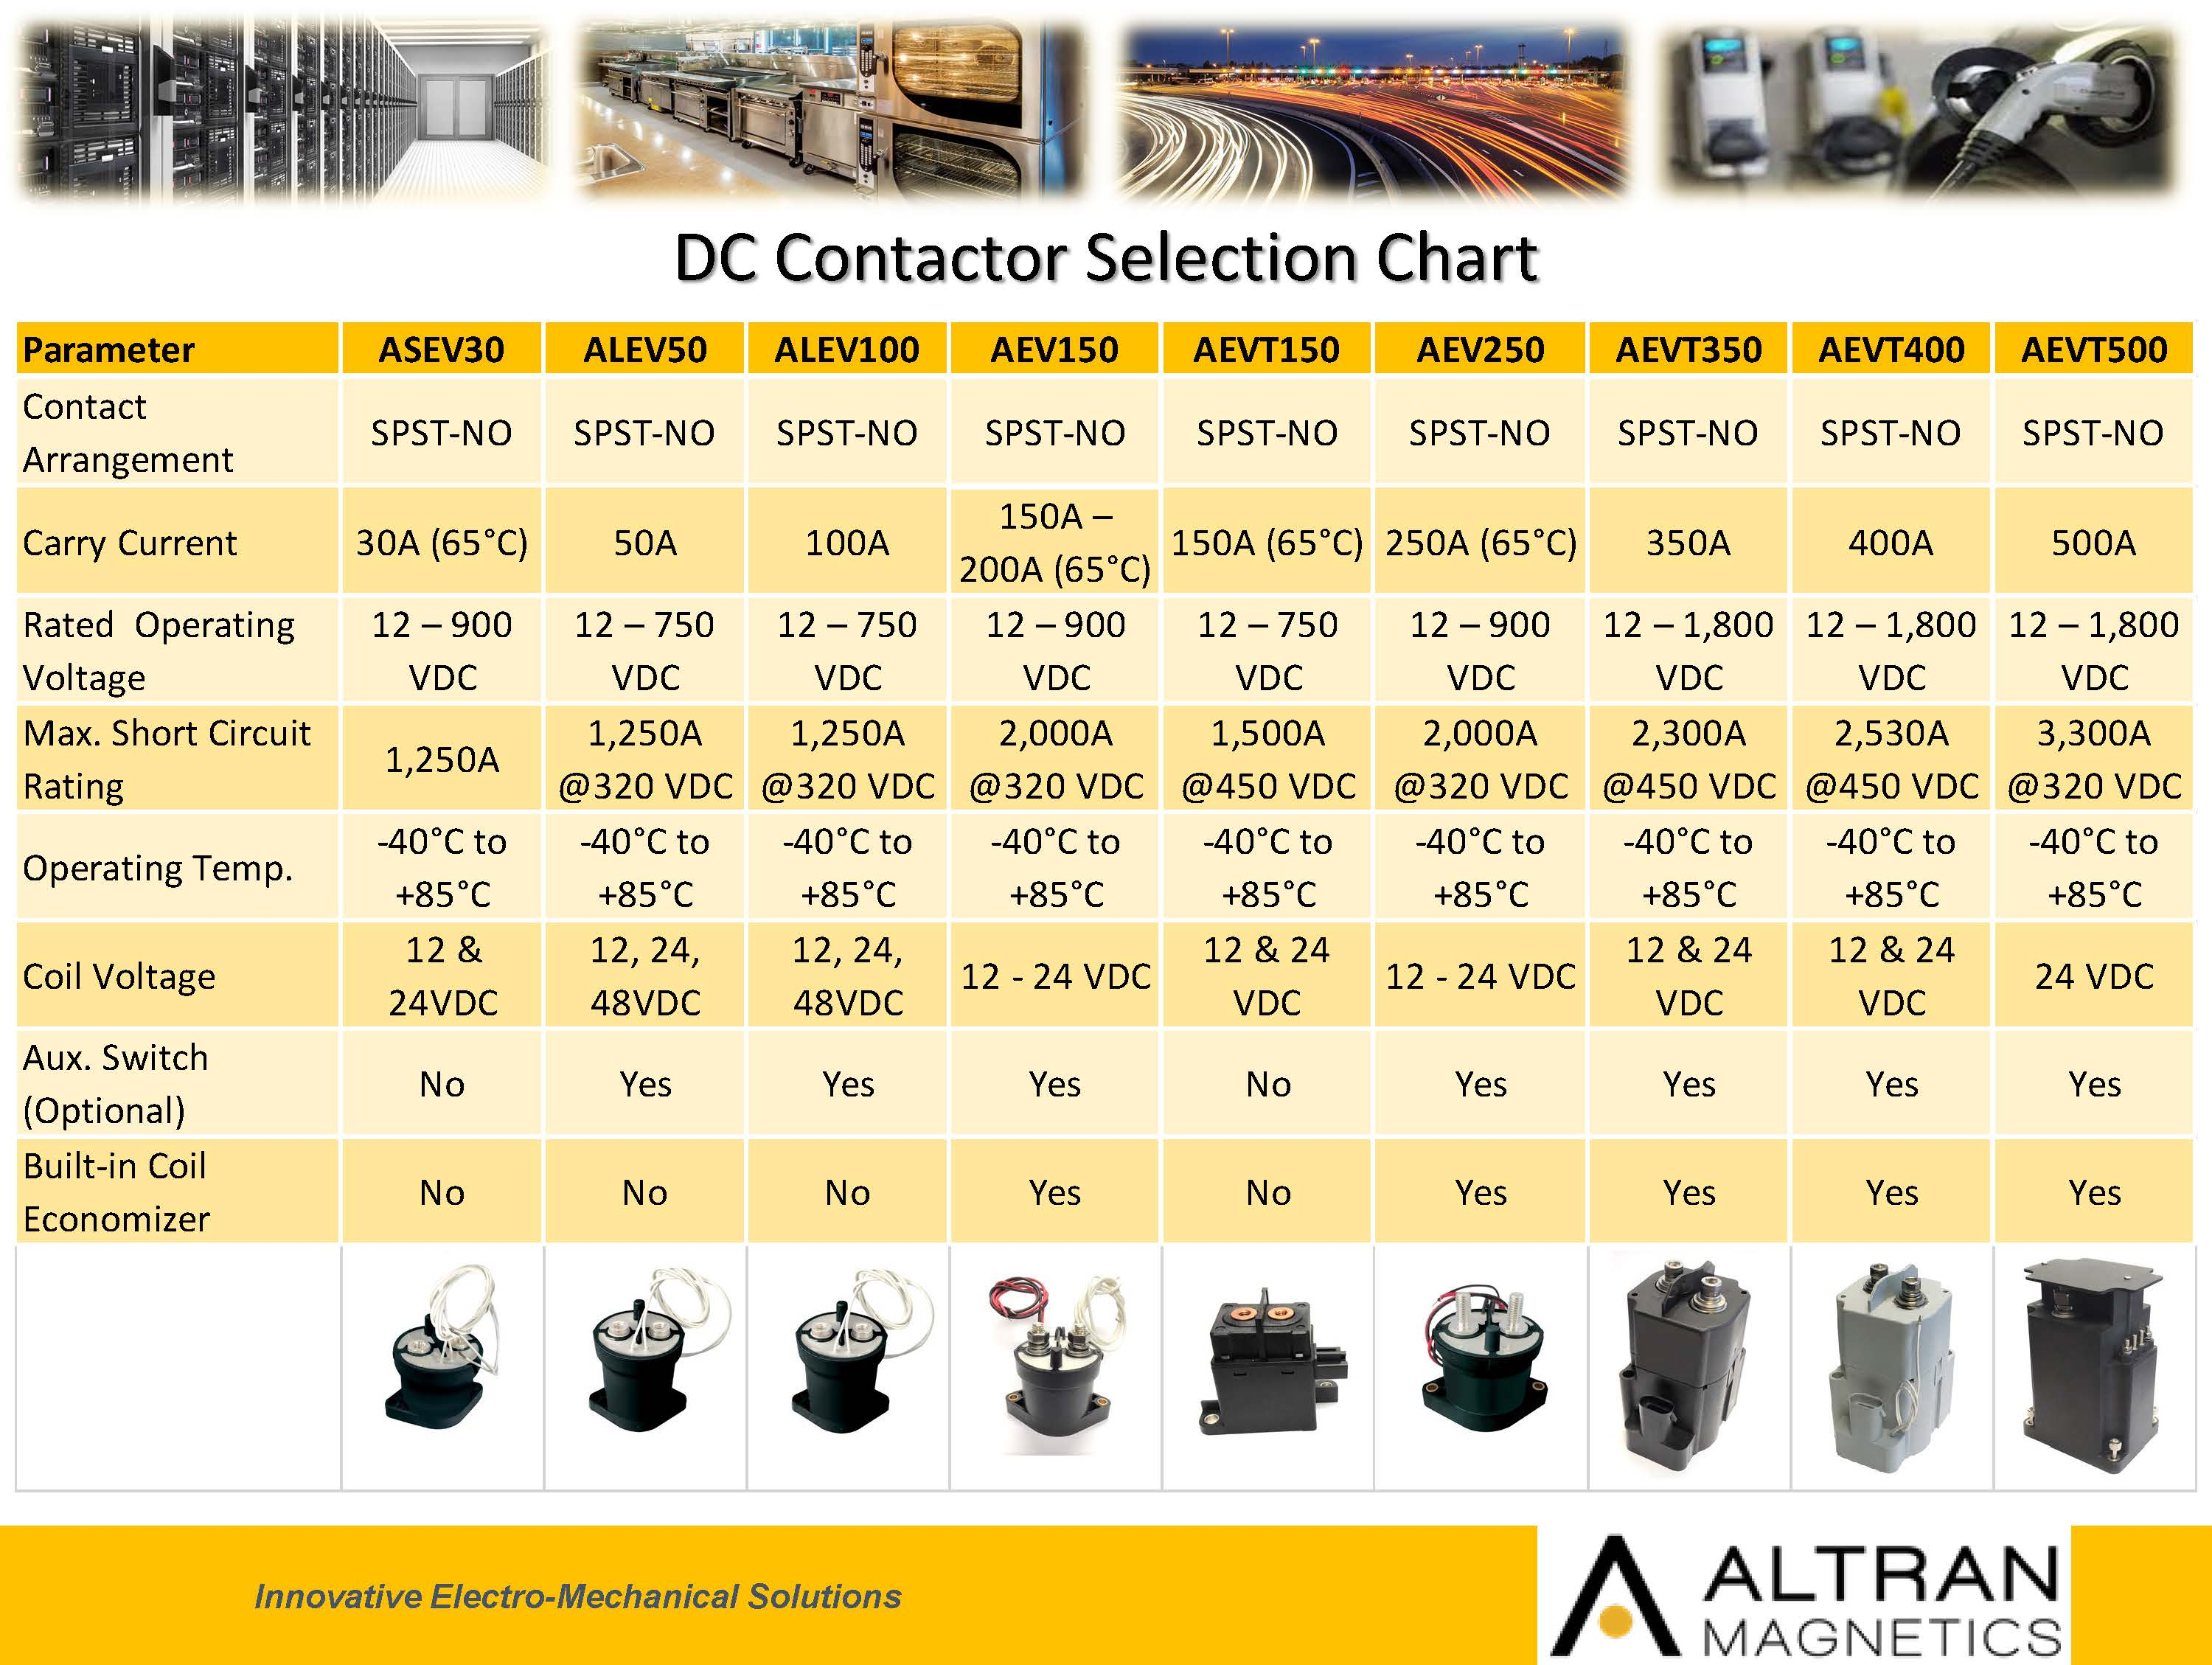 DC Contactor Selection Chart